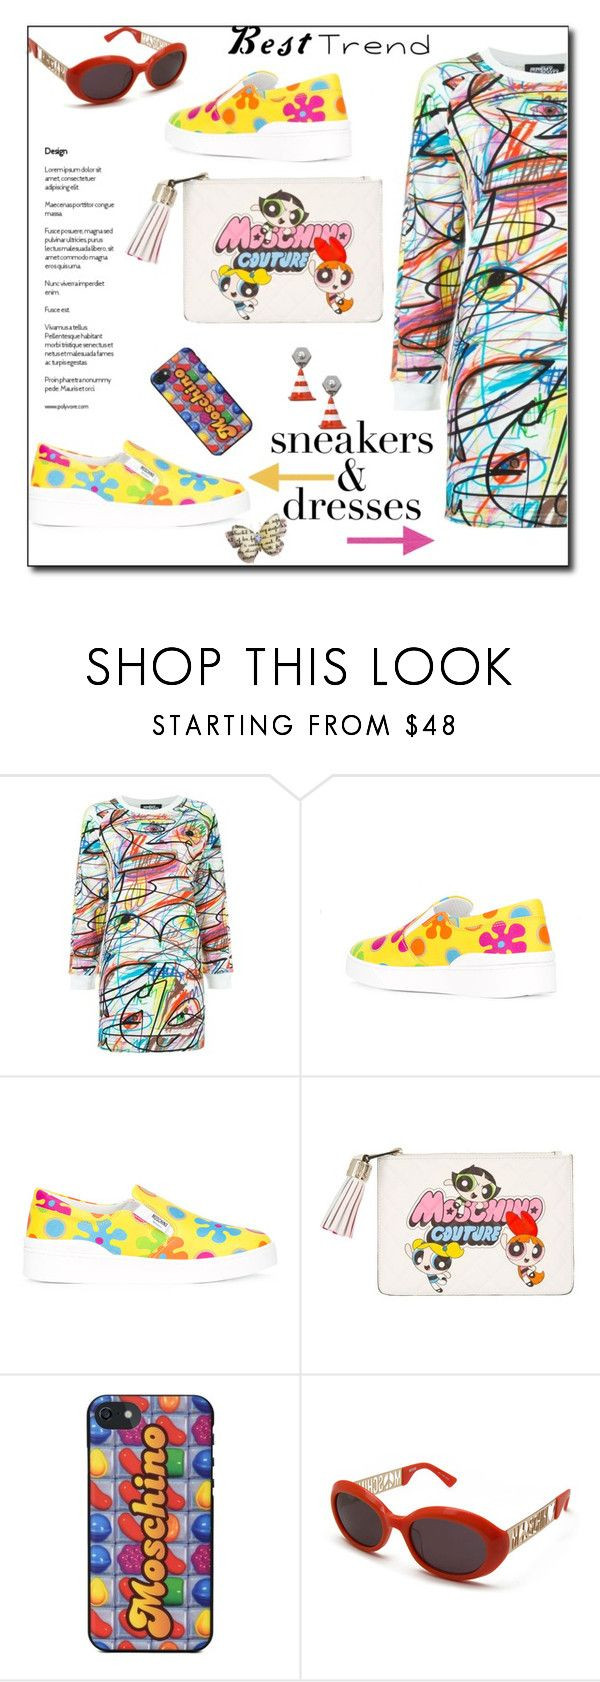 """""""Sporty.Chic: sneakers and dresses"""" by faten-m-h ❤ liked on Polyvore featuring Jeremy Scott, Moschino and SNEAKERSANDDRESSES"""